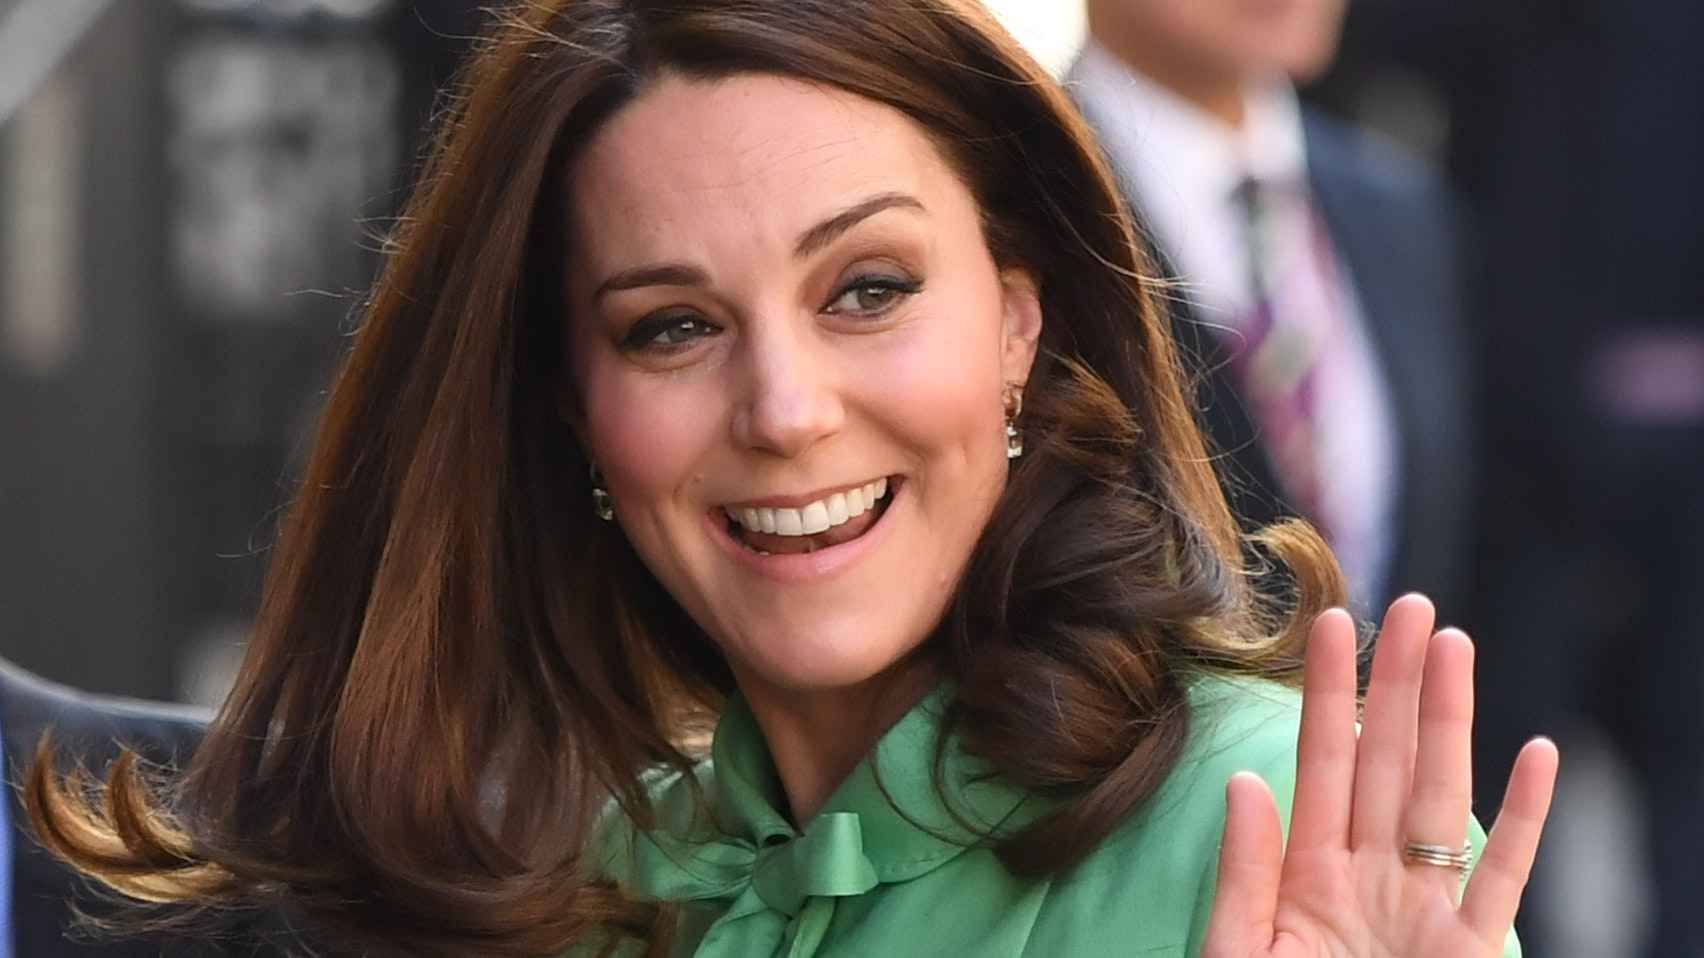 Kate Middleton in pictures: The Duchess of Cambridge meets SportsAid stars